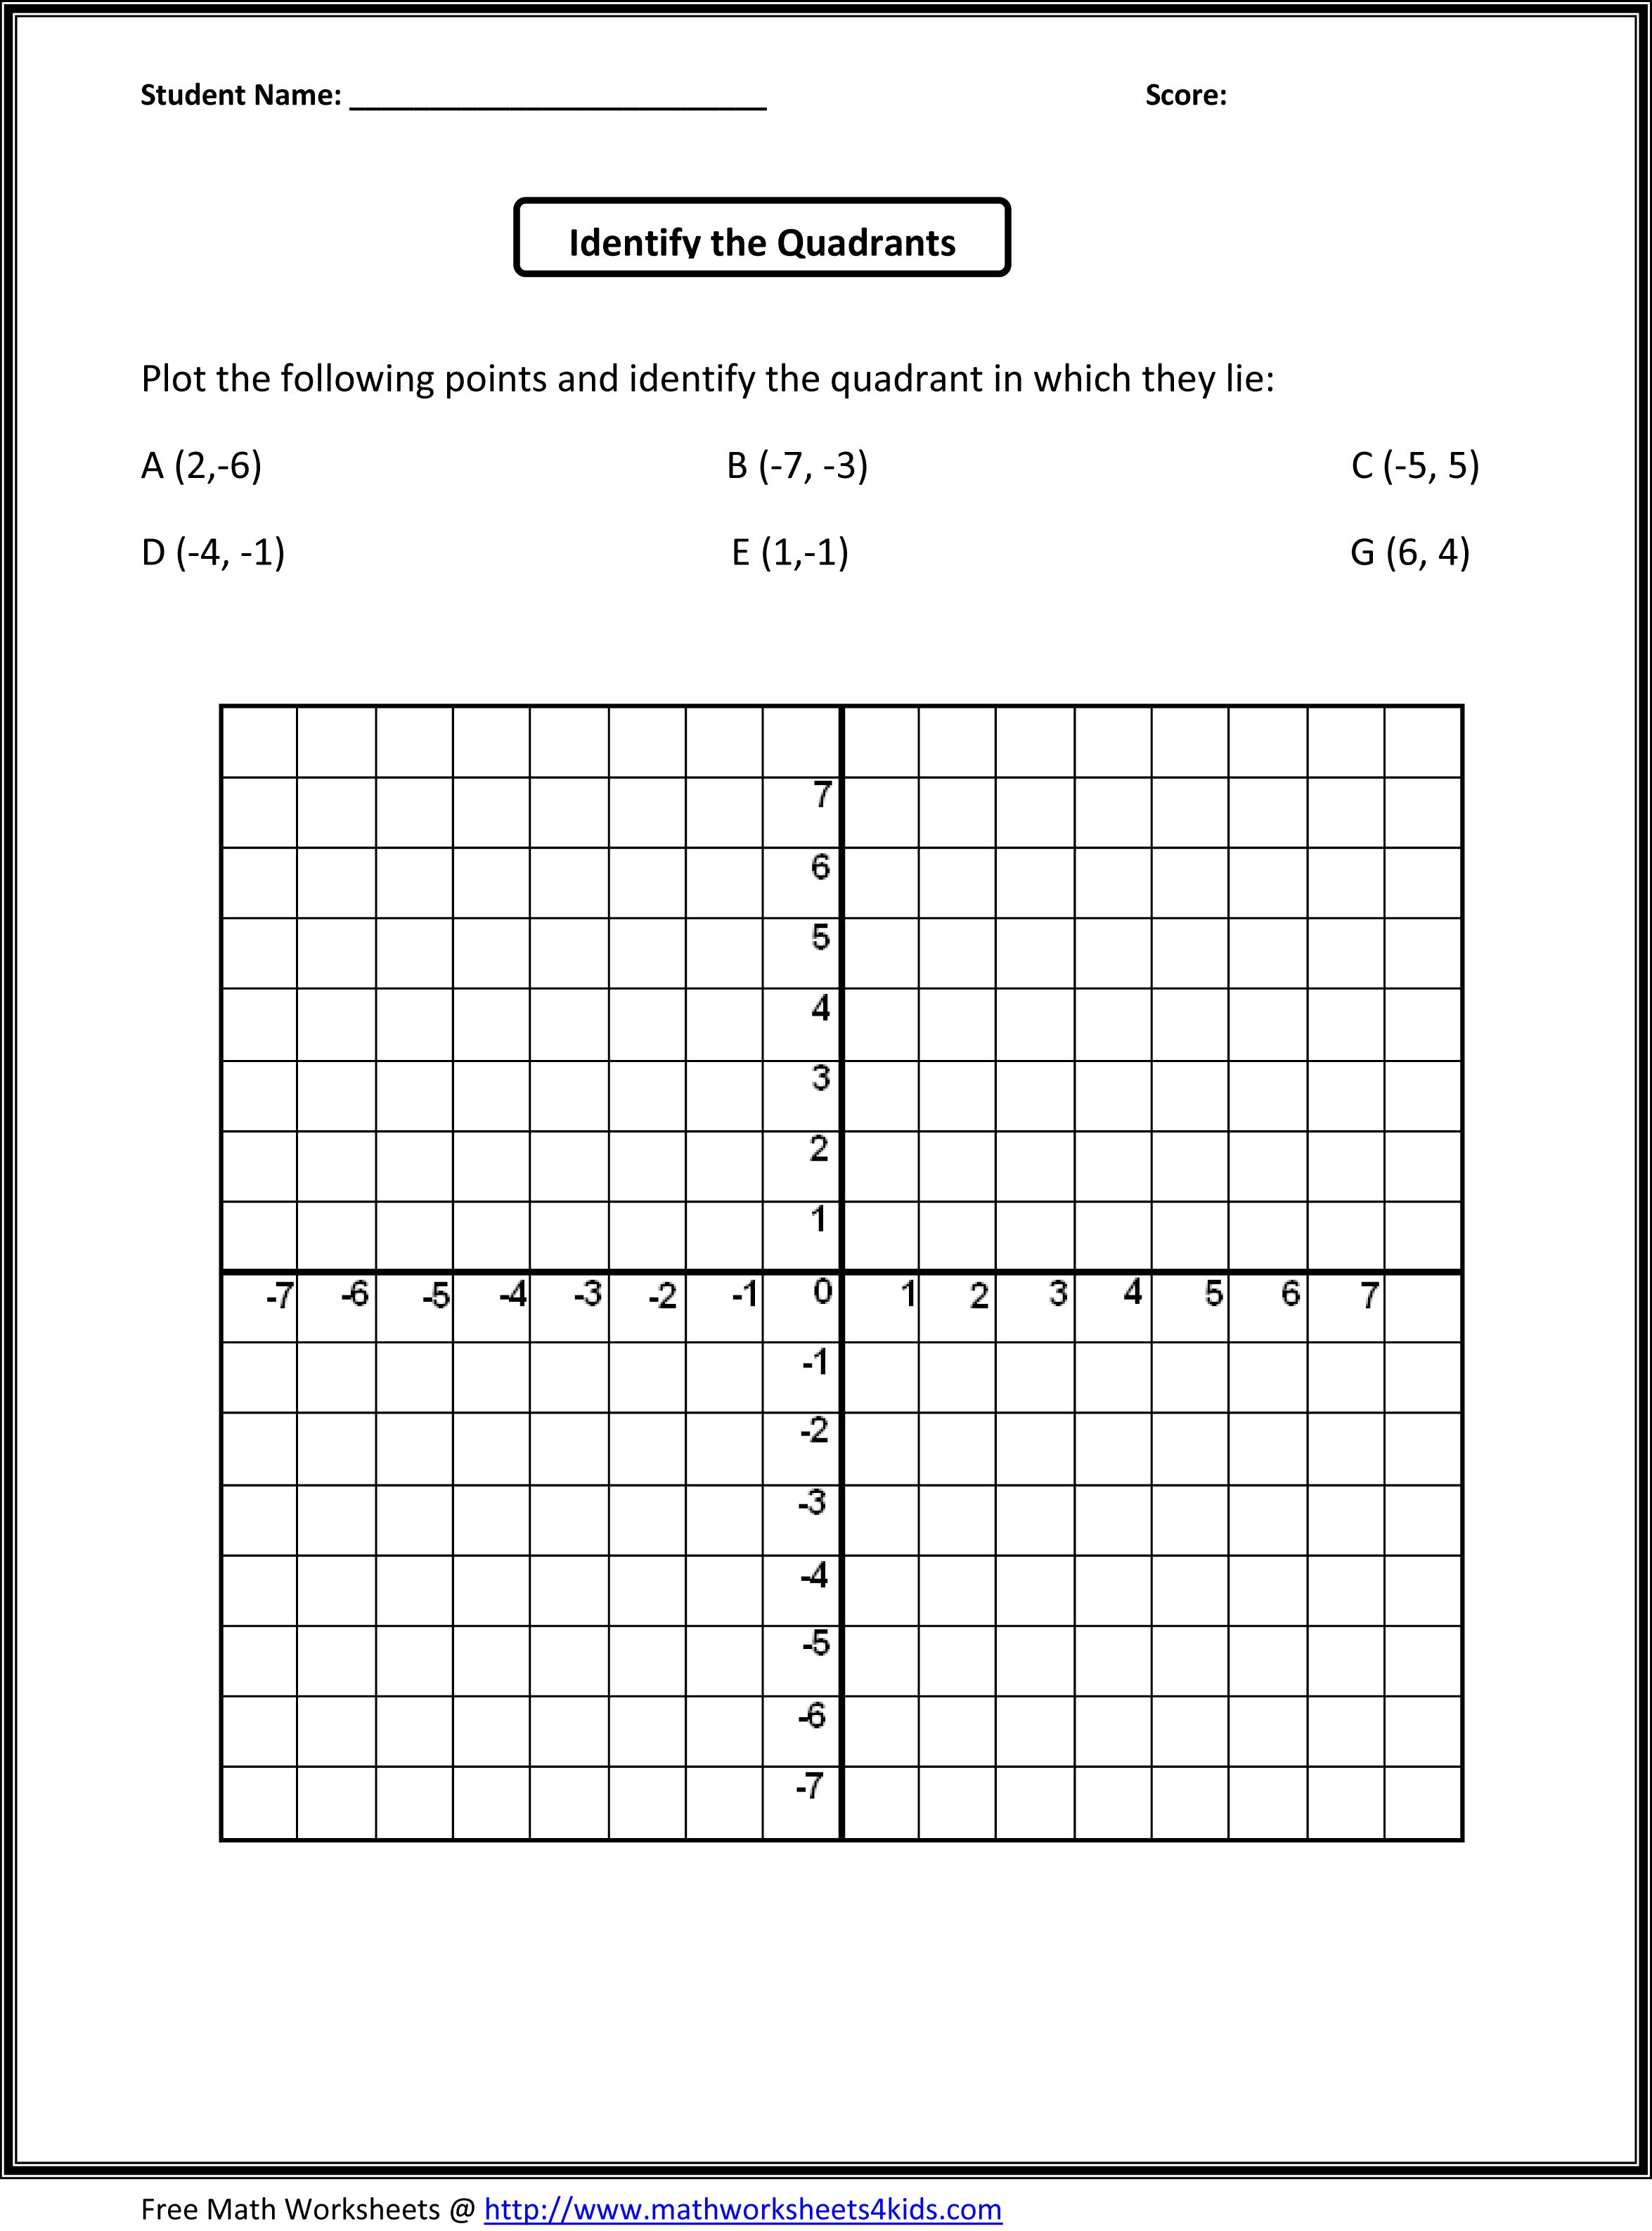 5th Grade Math Worksheet | School | Pinterest | Math worksheets ...